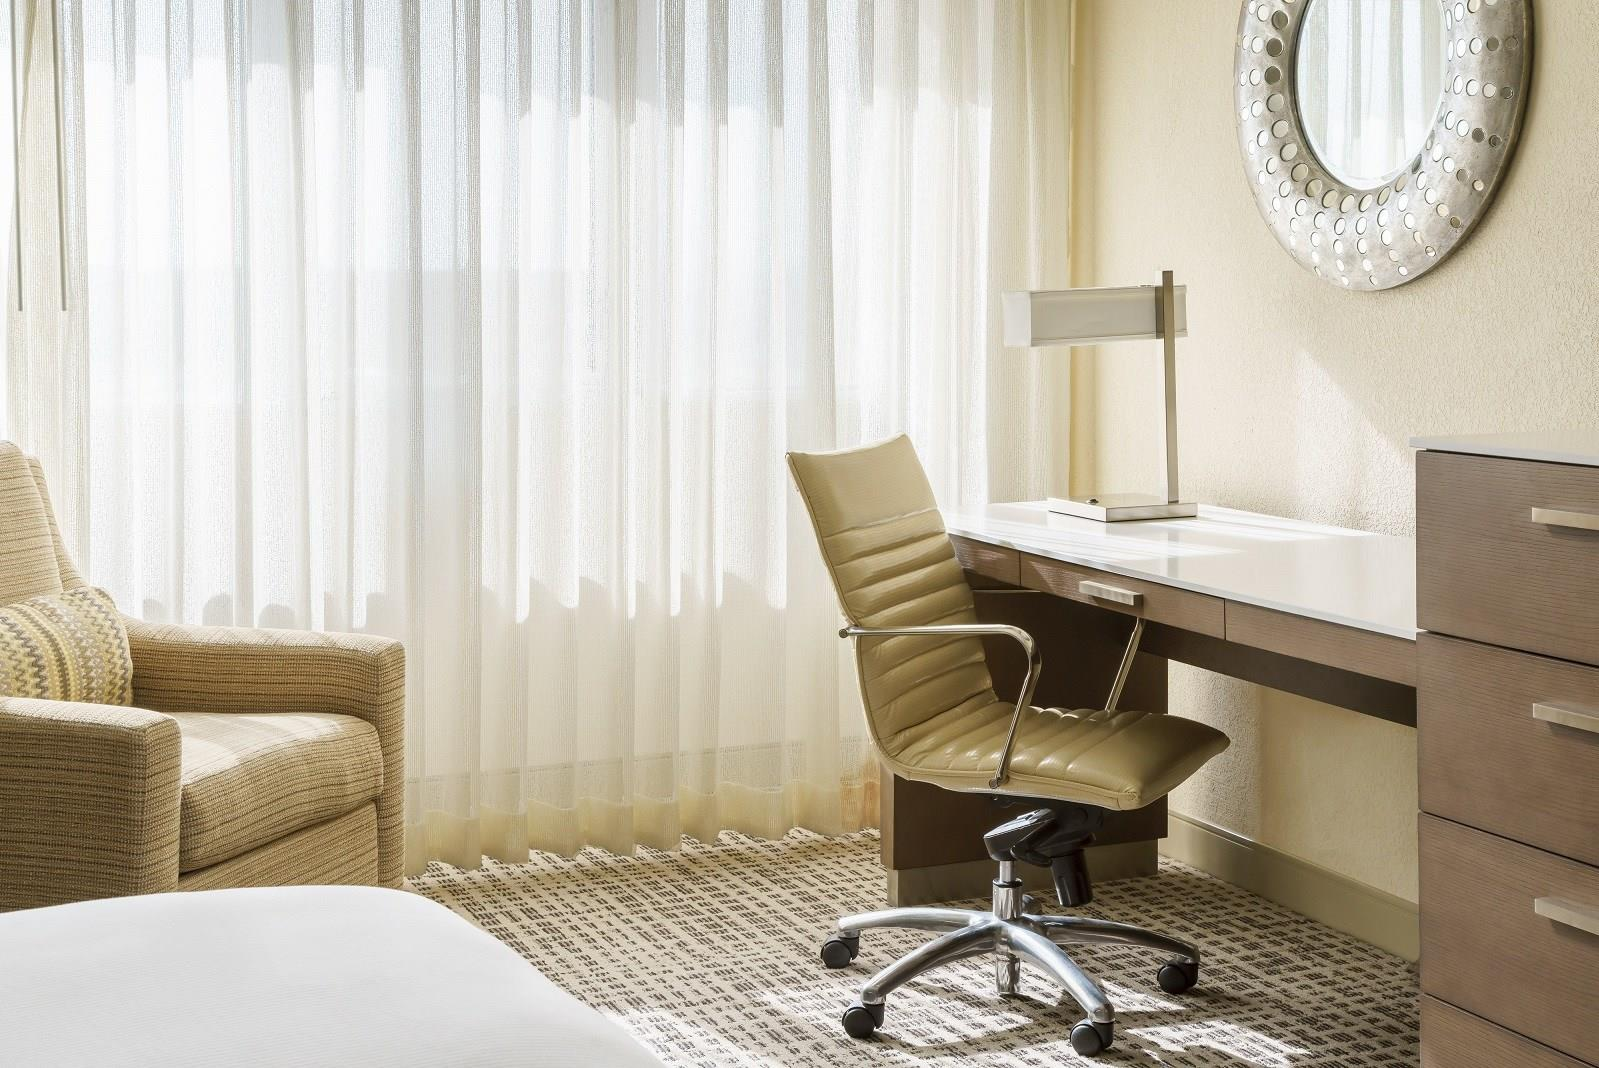 Meetings and Events at DoubleTree by Hilton Hotel Orlando Airport ...